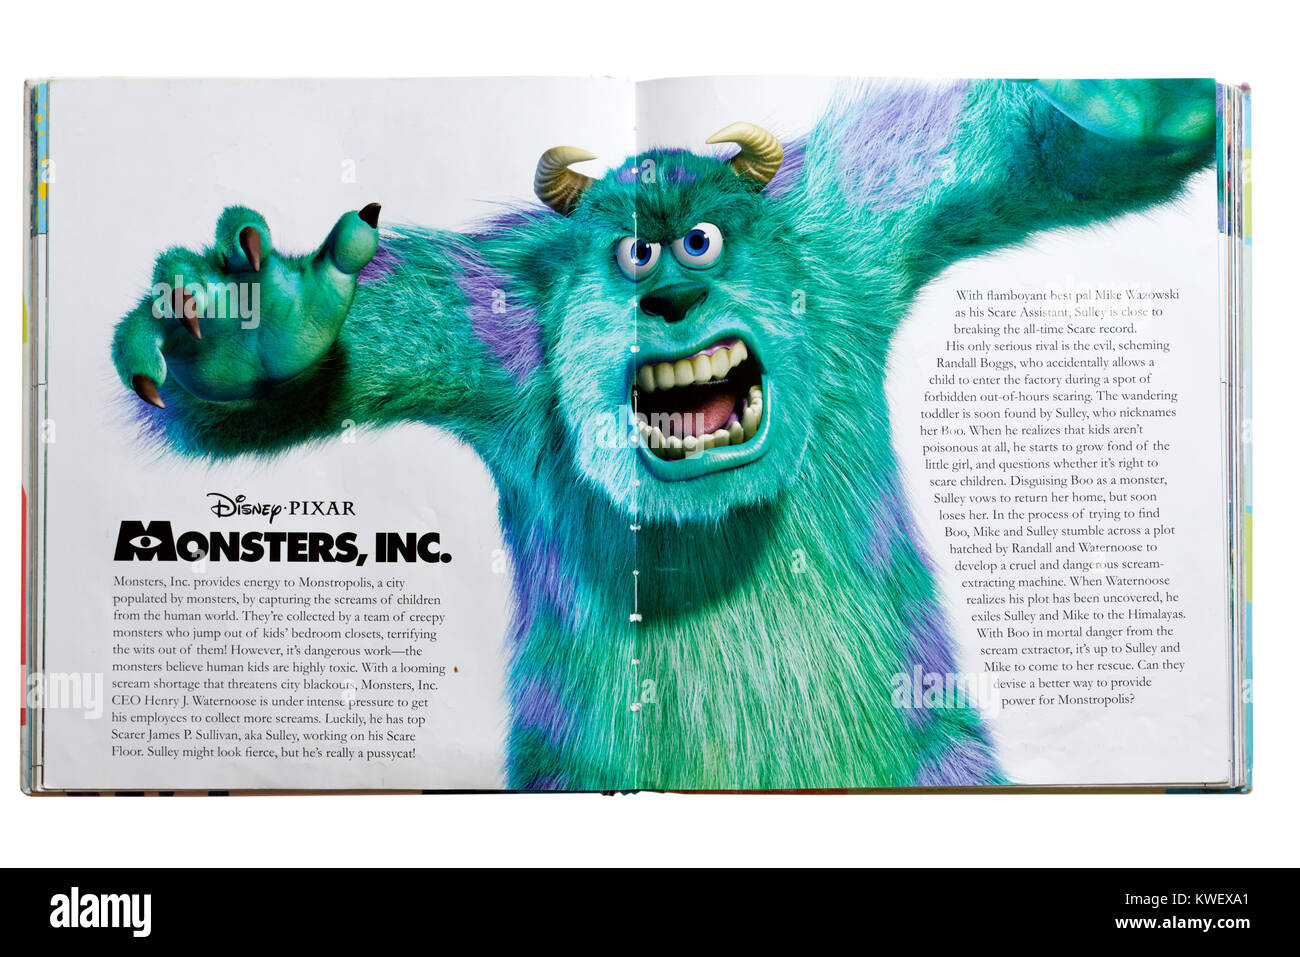 Pixar character Sulley from the film Monsters Inc. in a Pixar Character Guide - Stock Image